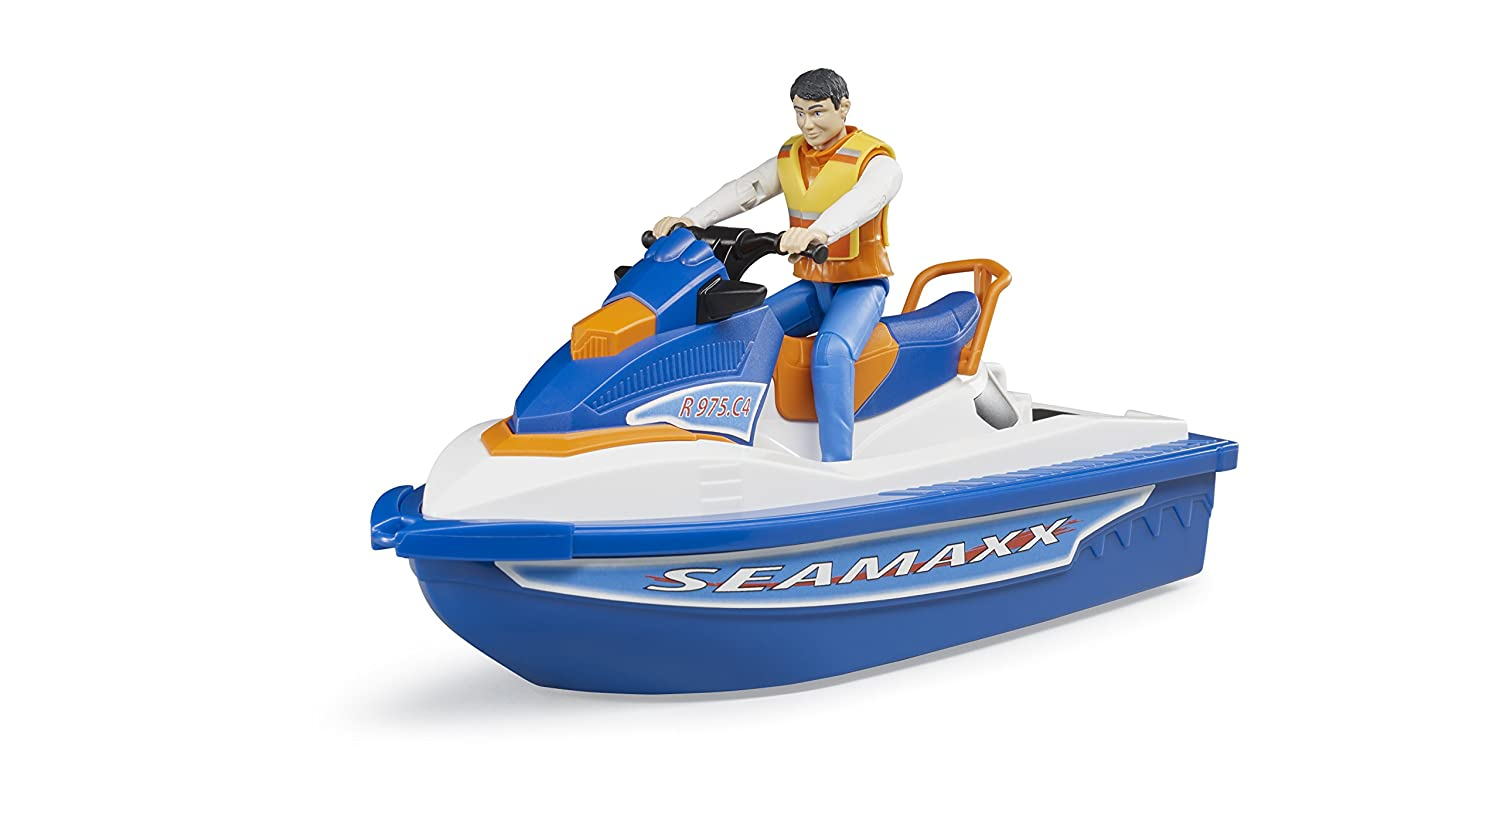 Bruder Personal Water Craft with Driver Vehicles-Toys 63150